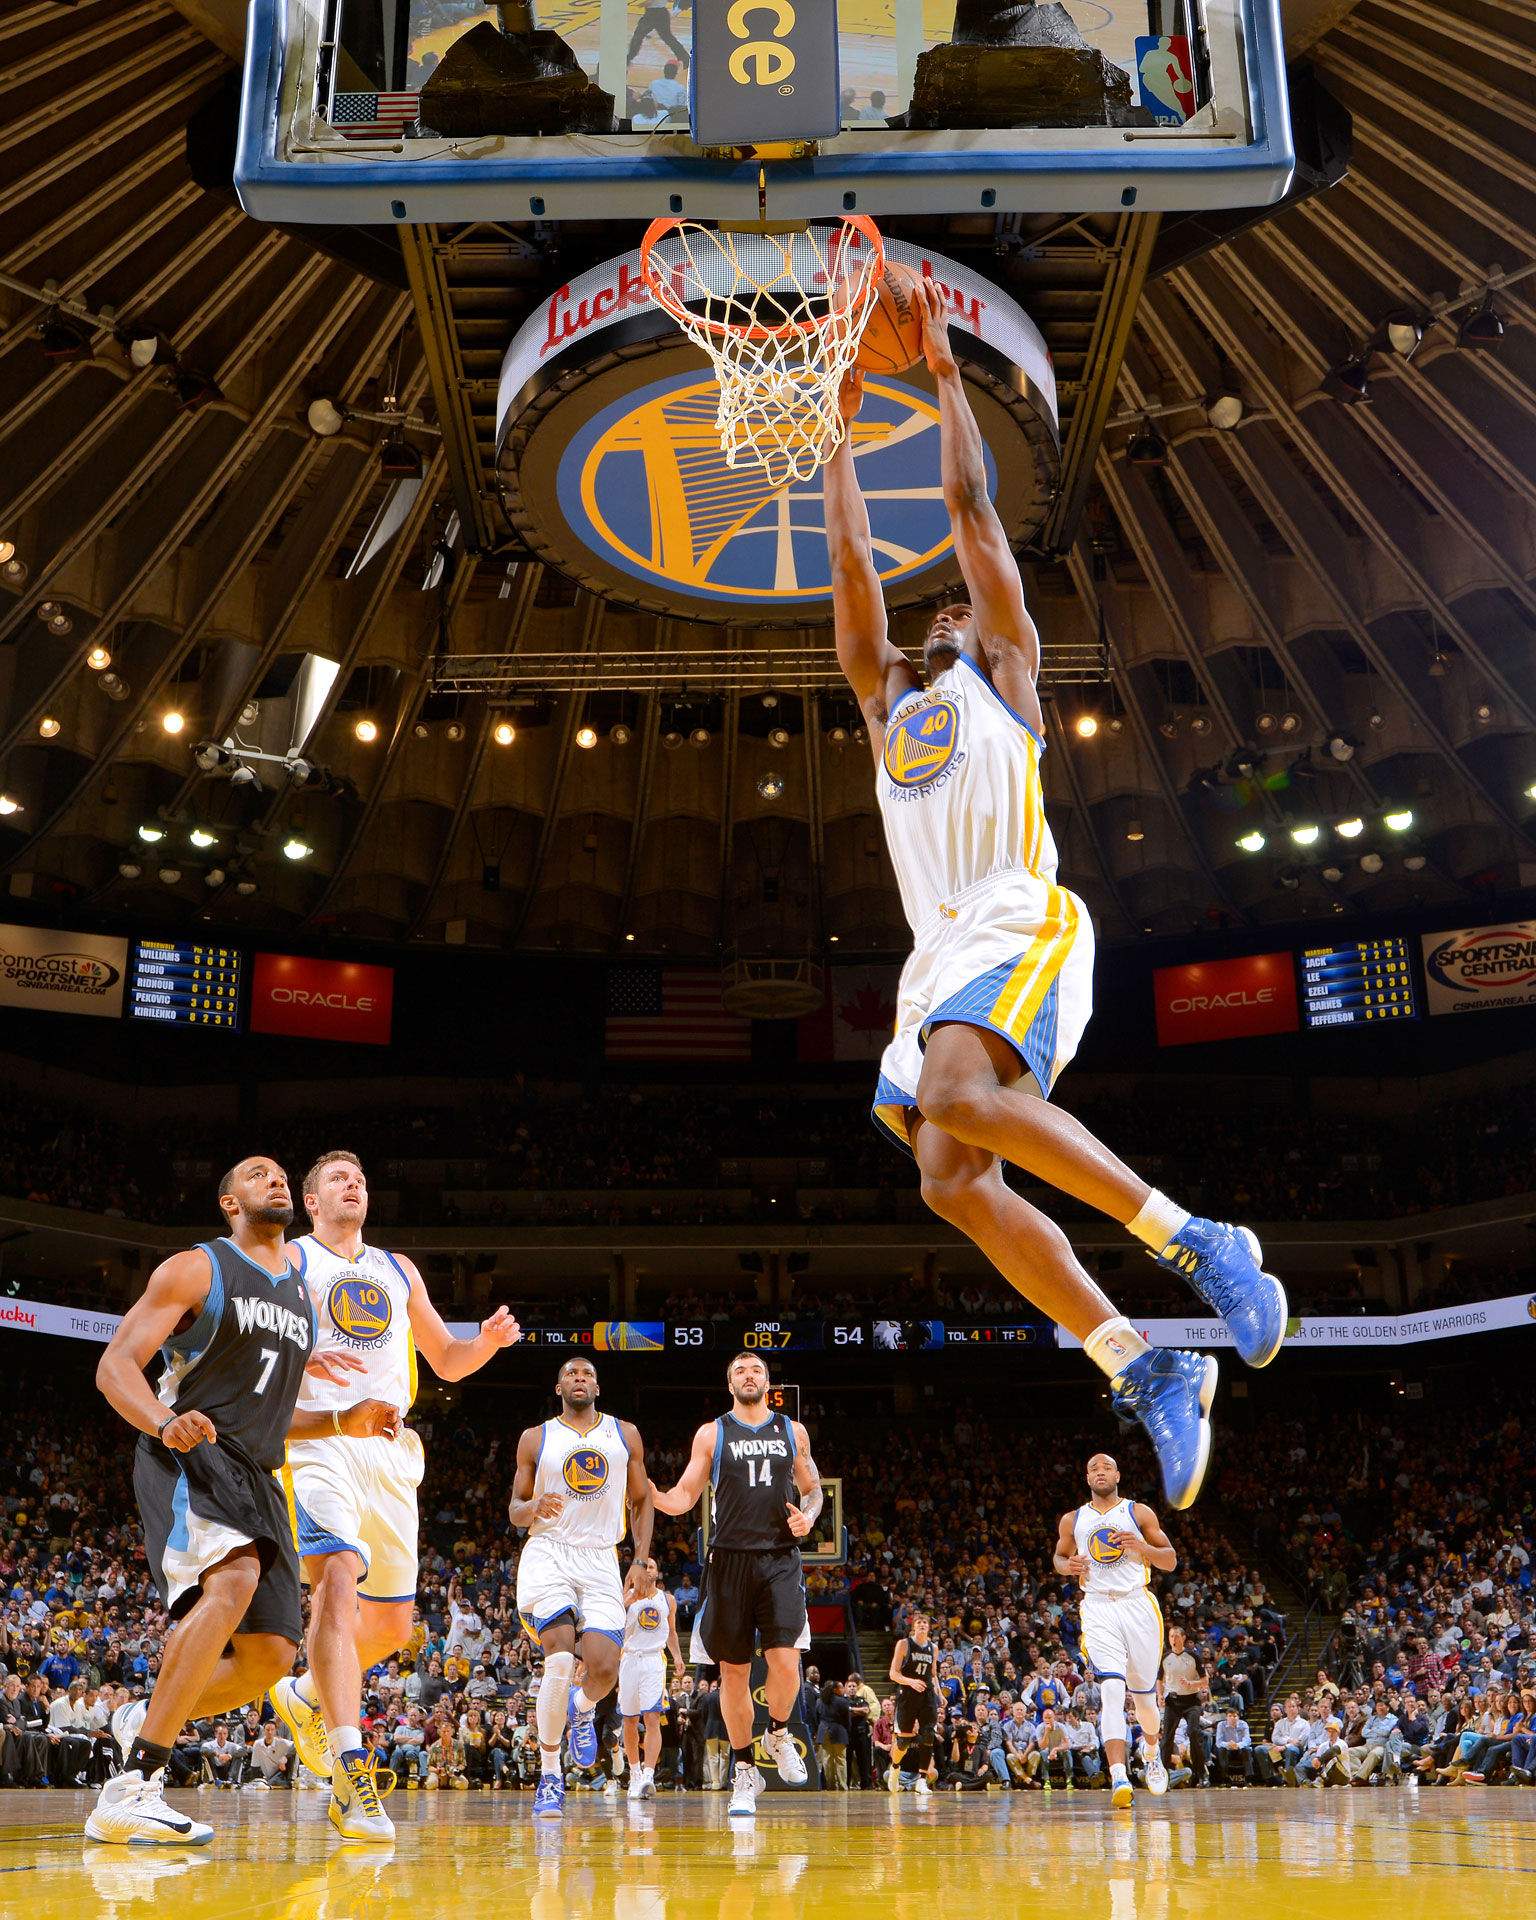 Barnes and dunk